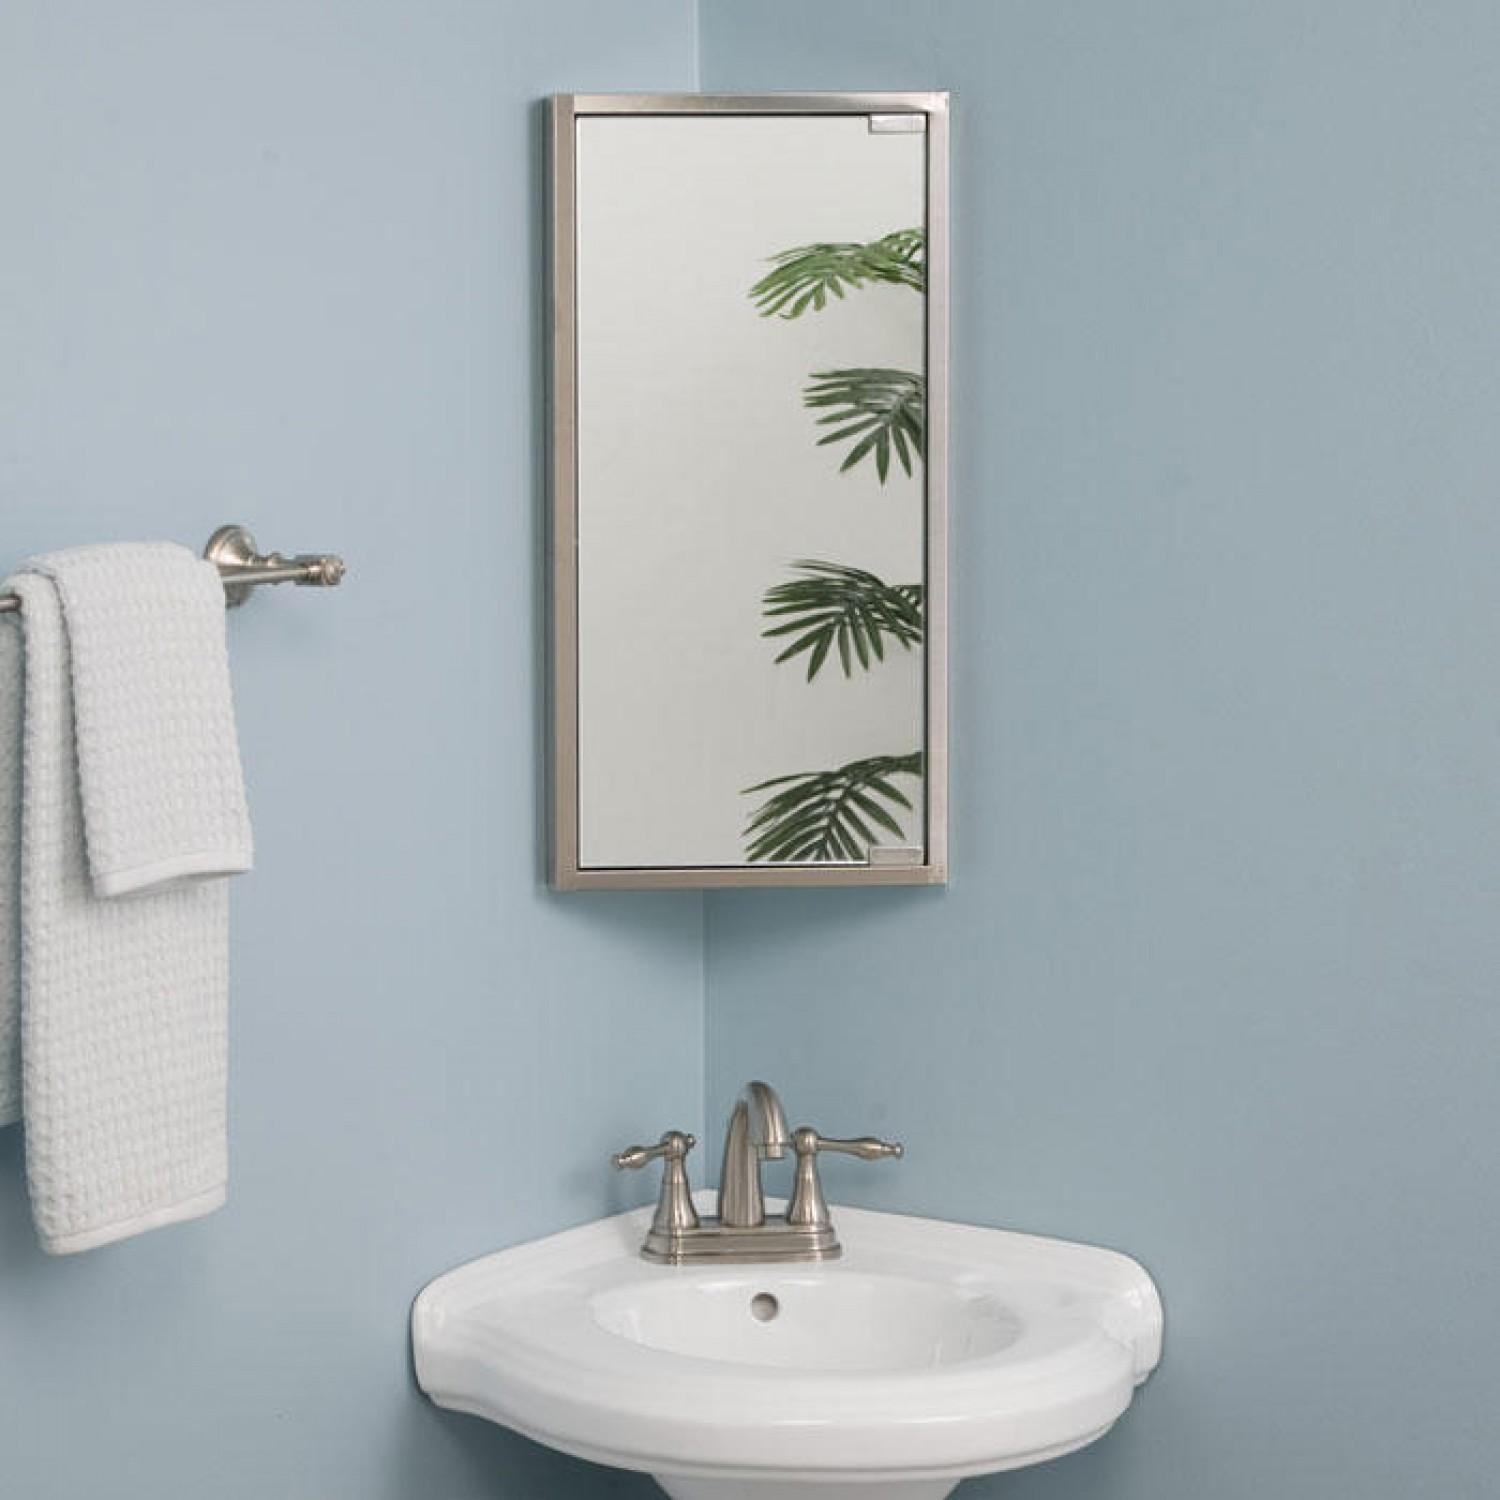 Kugler Stainless Steel Corner Medicine Cabinet – Bathroom In Corner Mirrors (Image 17 of 20)